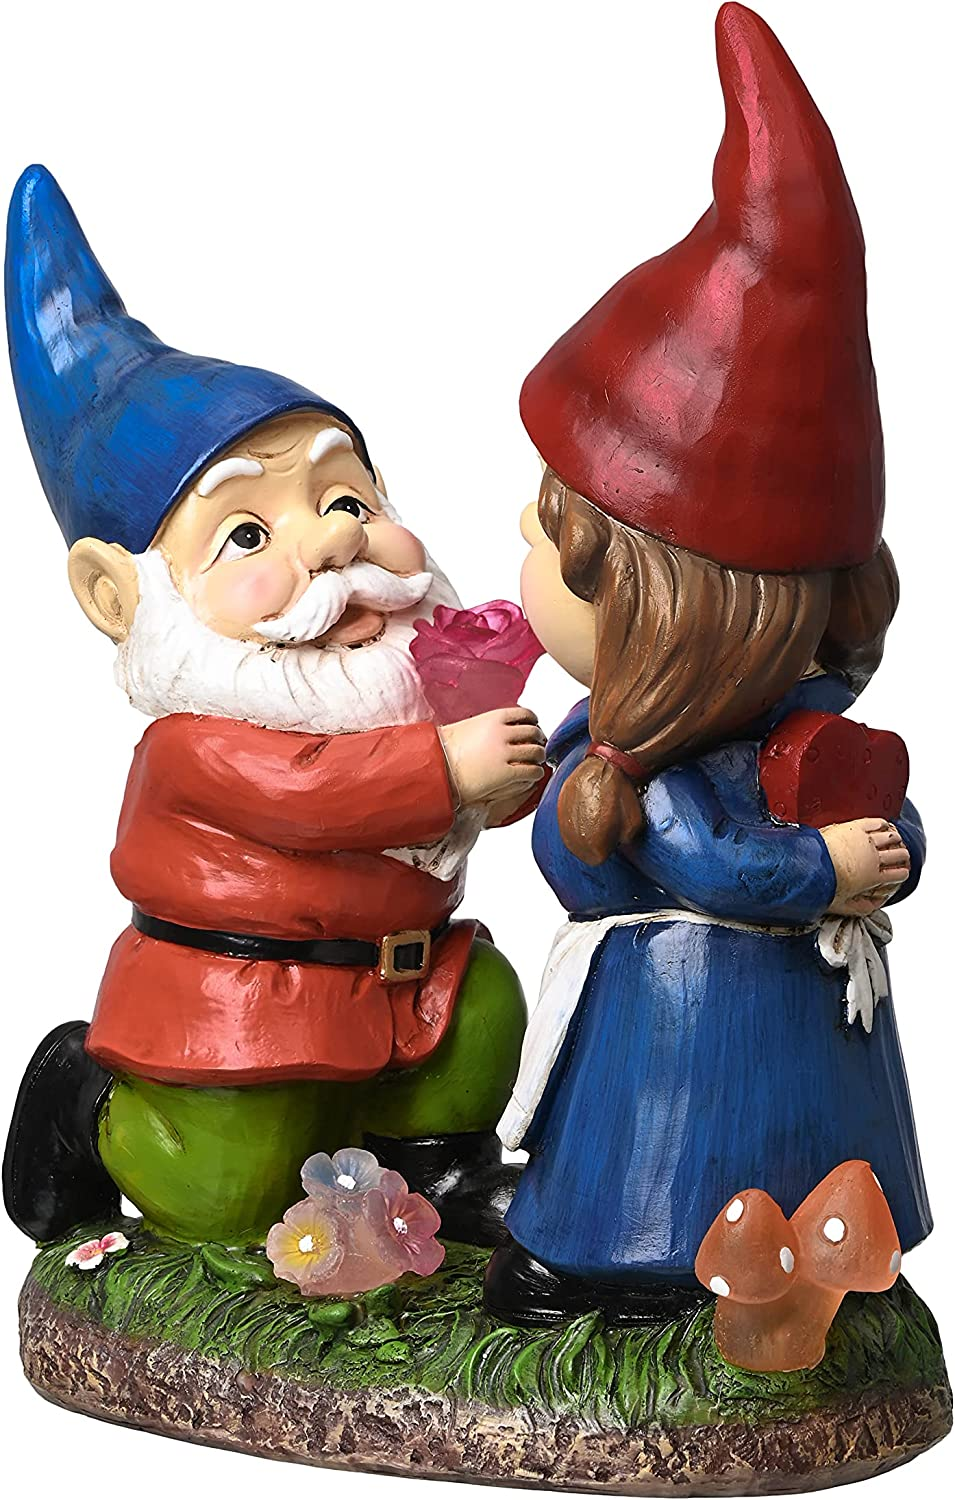 TERESA'S All 67% OFF of fixed price stores are sold COLLECTIONS Romantic Gnome Couple Statue and Garden Scu